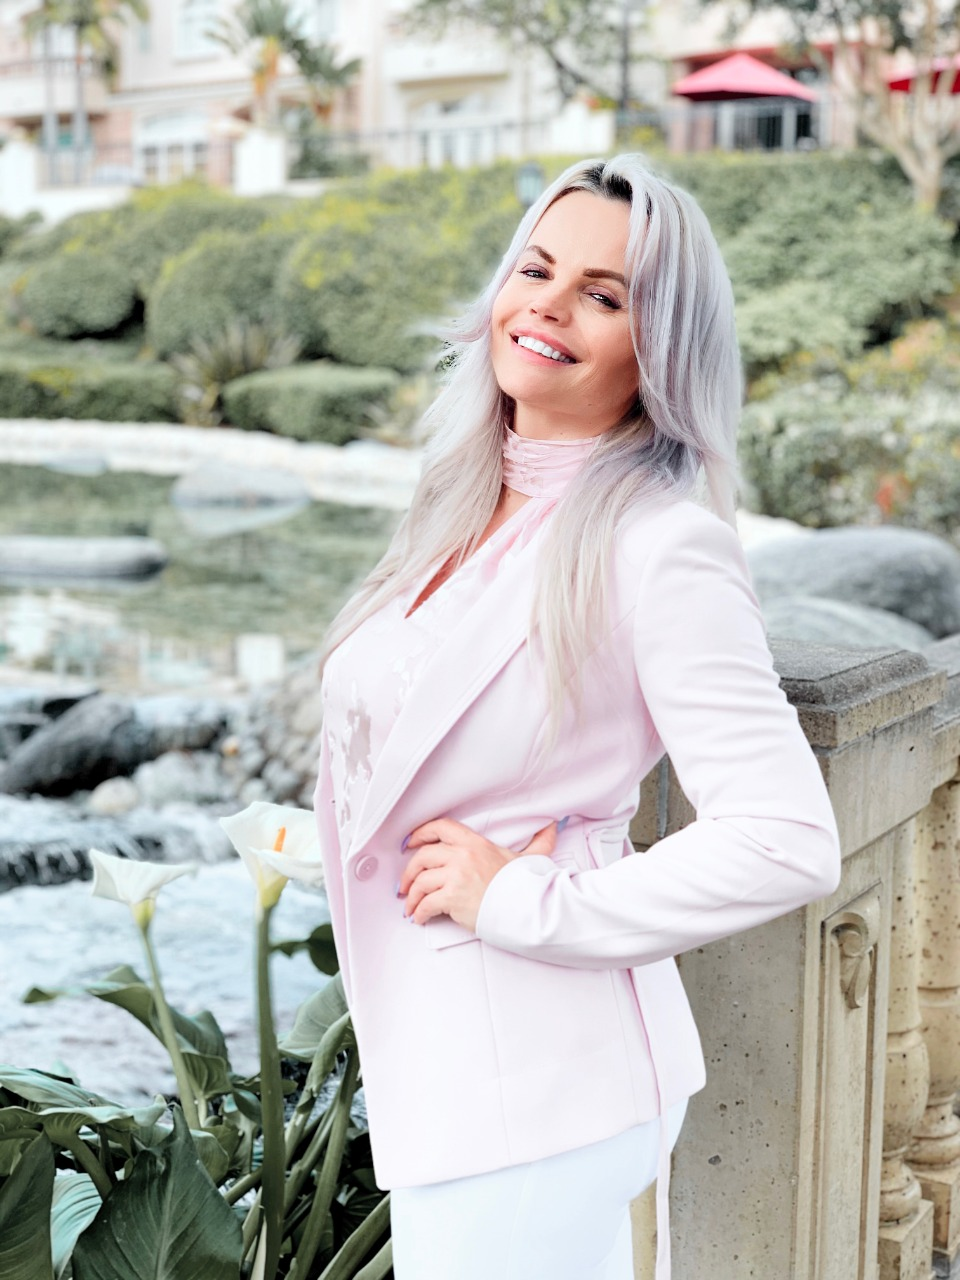 American Success Story Committed to Helping Others Achieve Financial Freedom with help from Romanian Immigrant, Izabela Hamilton, CEO & Founder of Rankbell